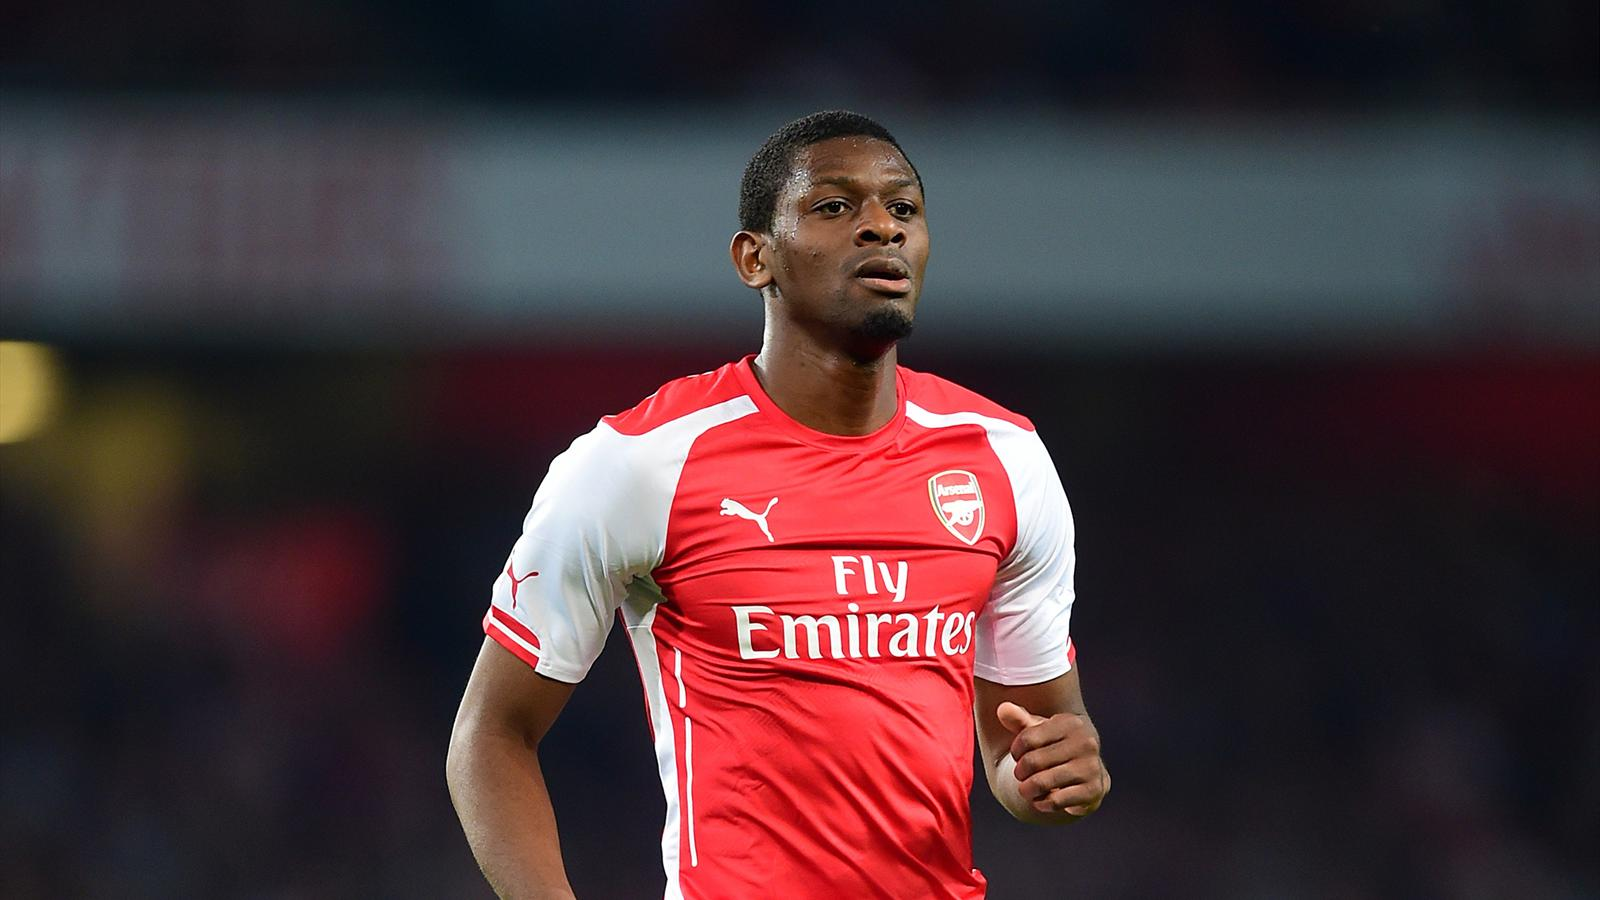 Abou Diaby has been released by Arsenal